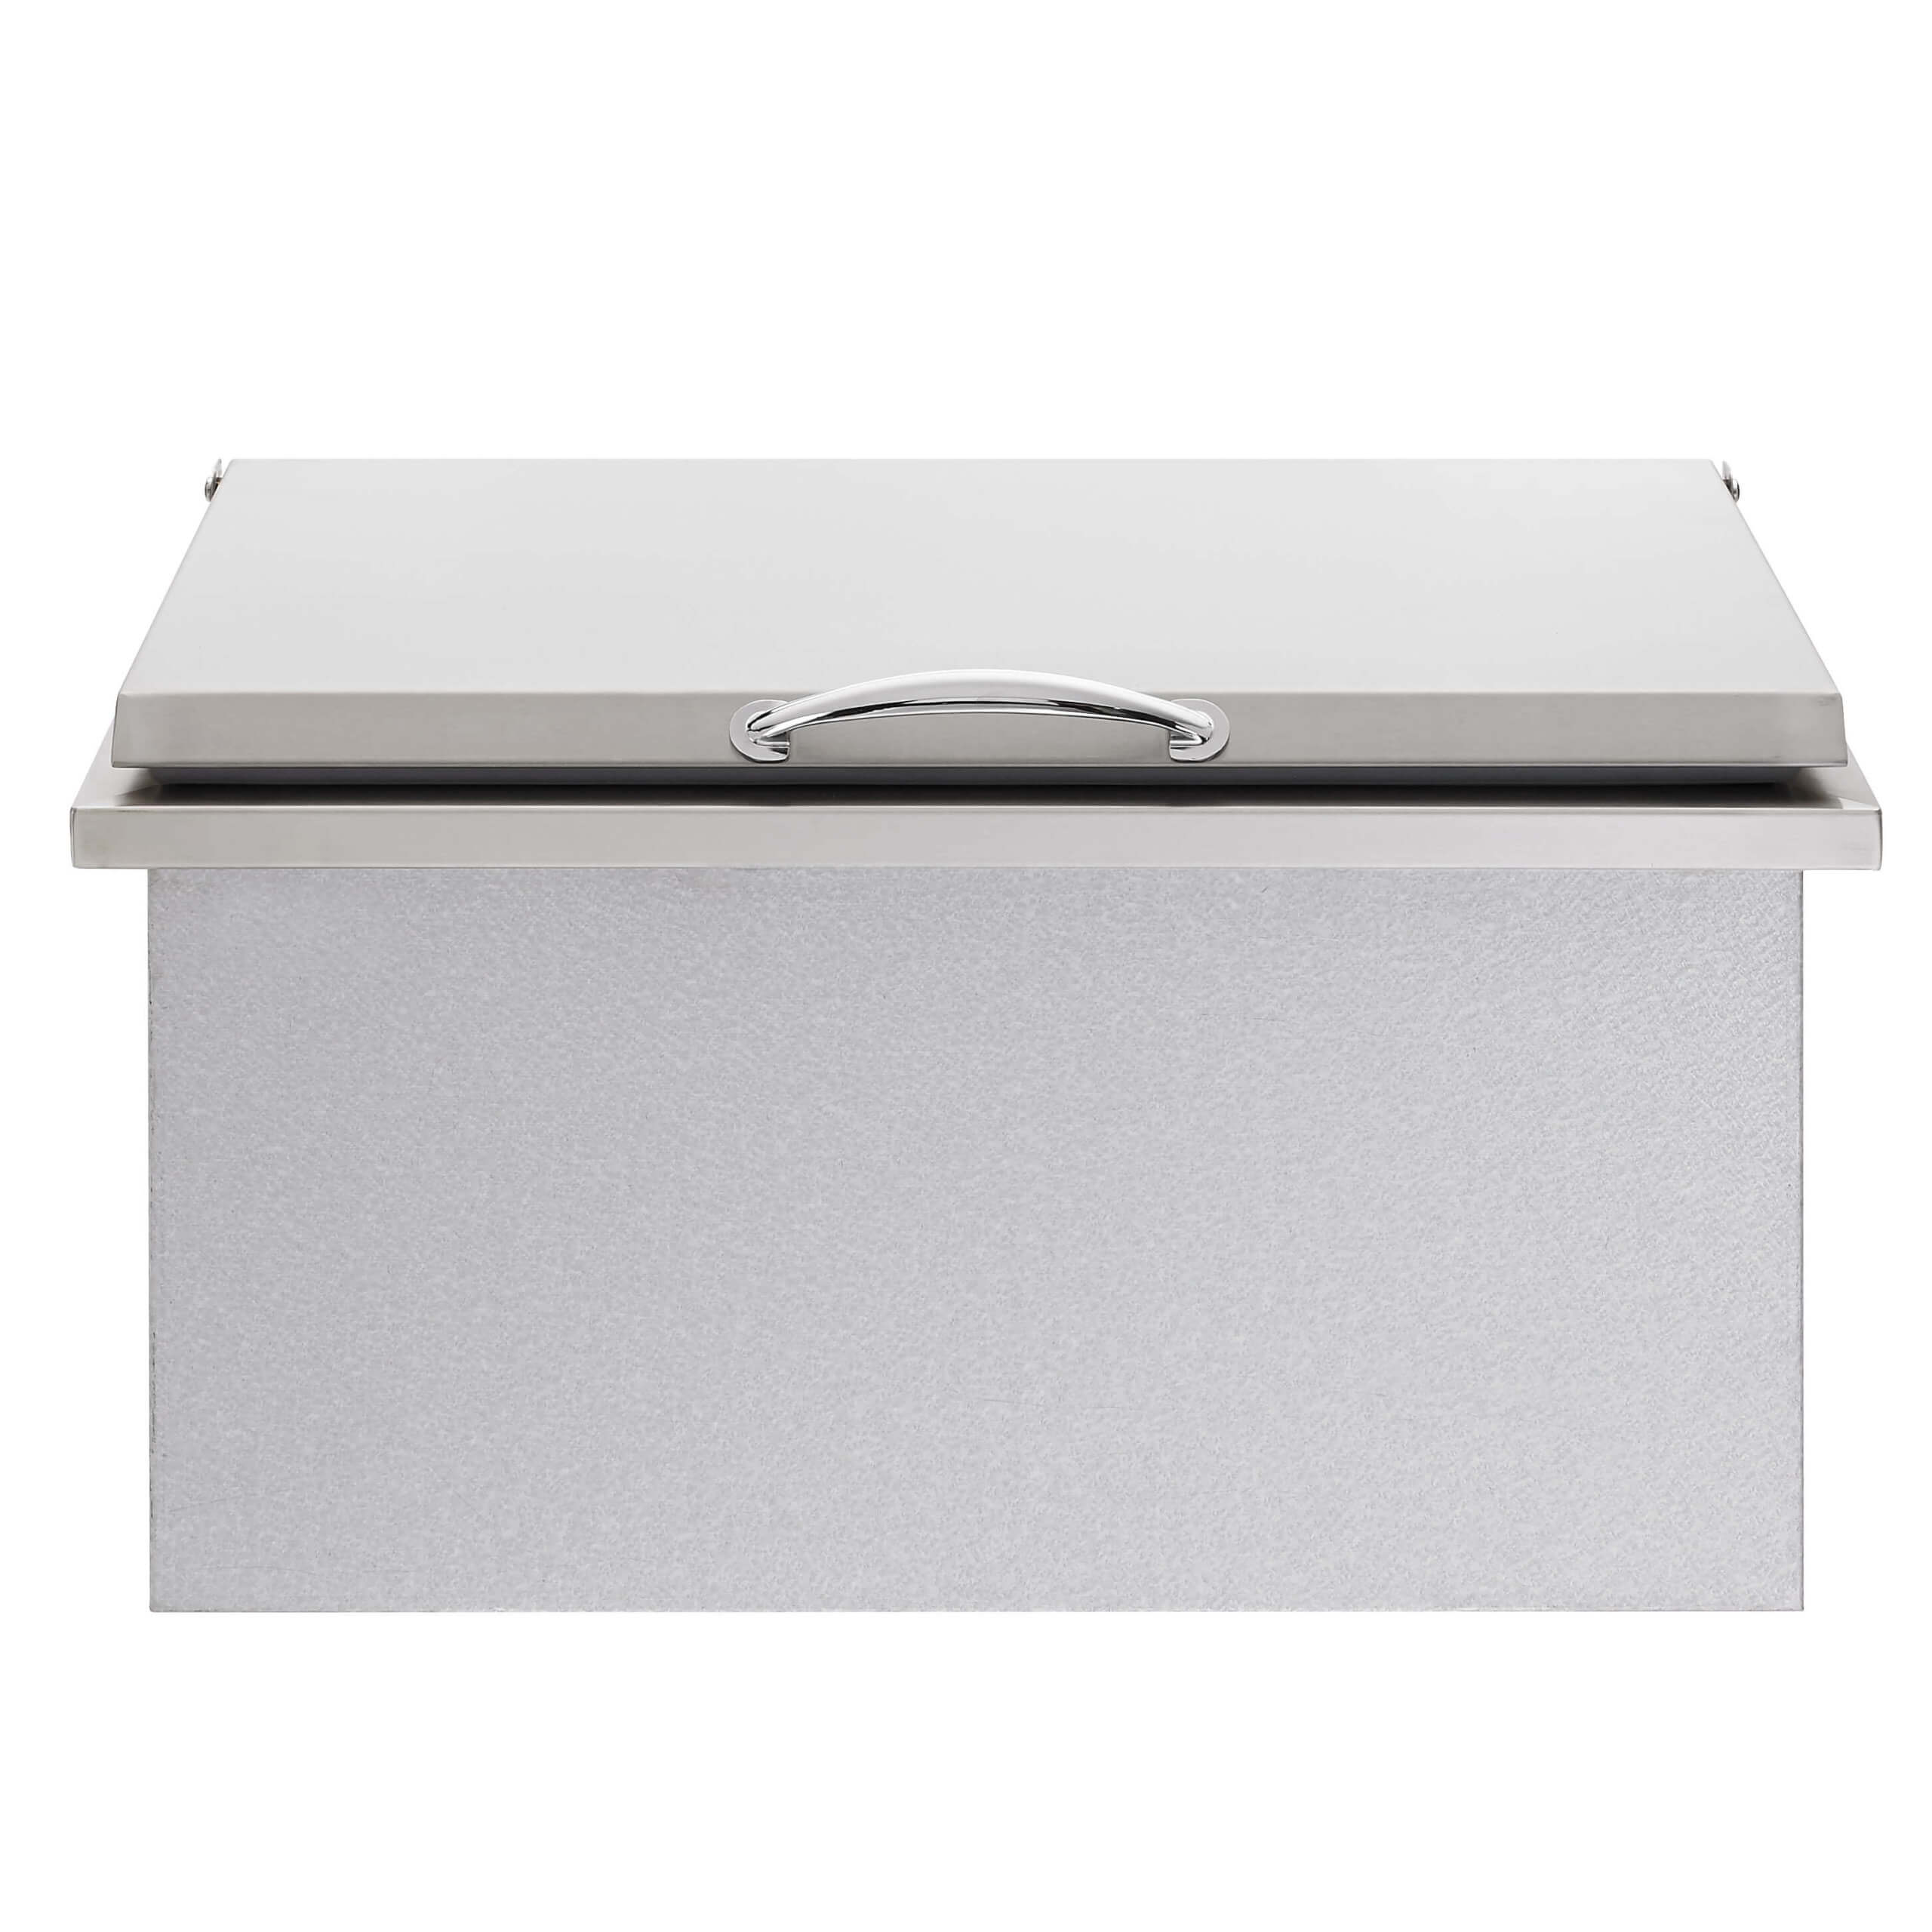 summerset-sunfire-large-capacity-ice-chest-outdoor-kitchen-accessories